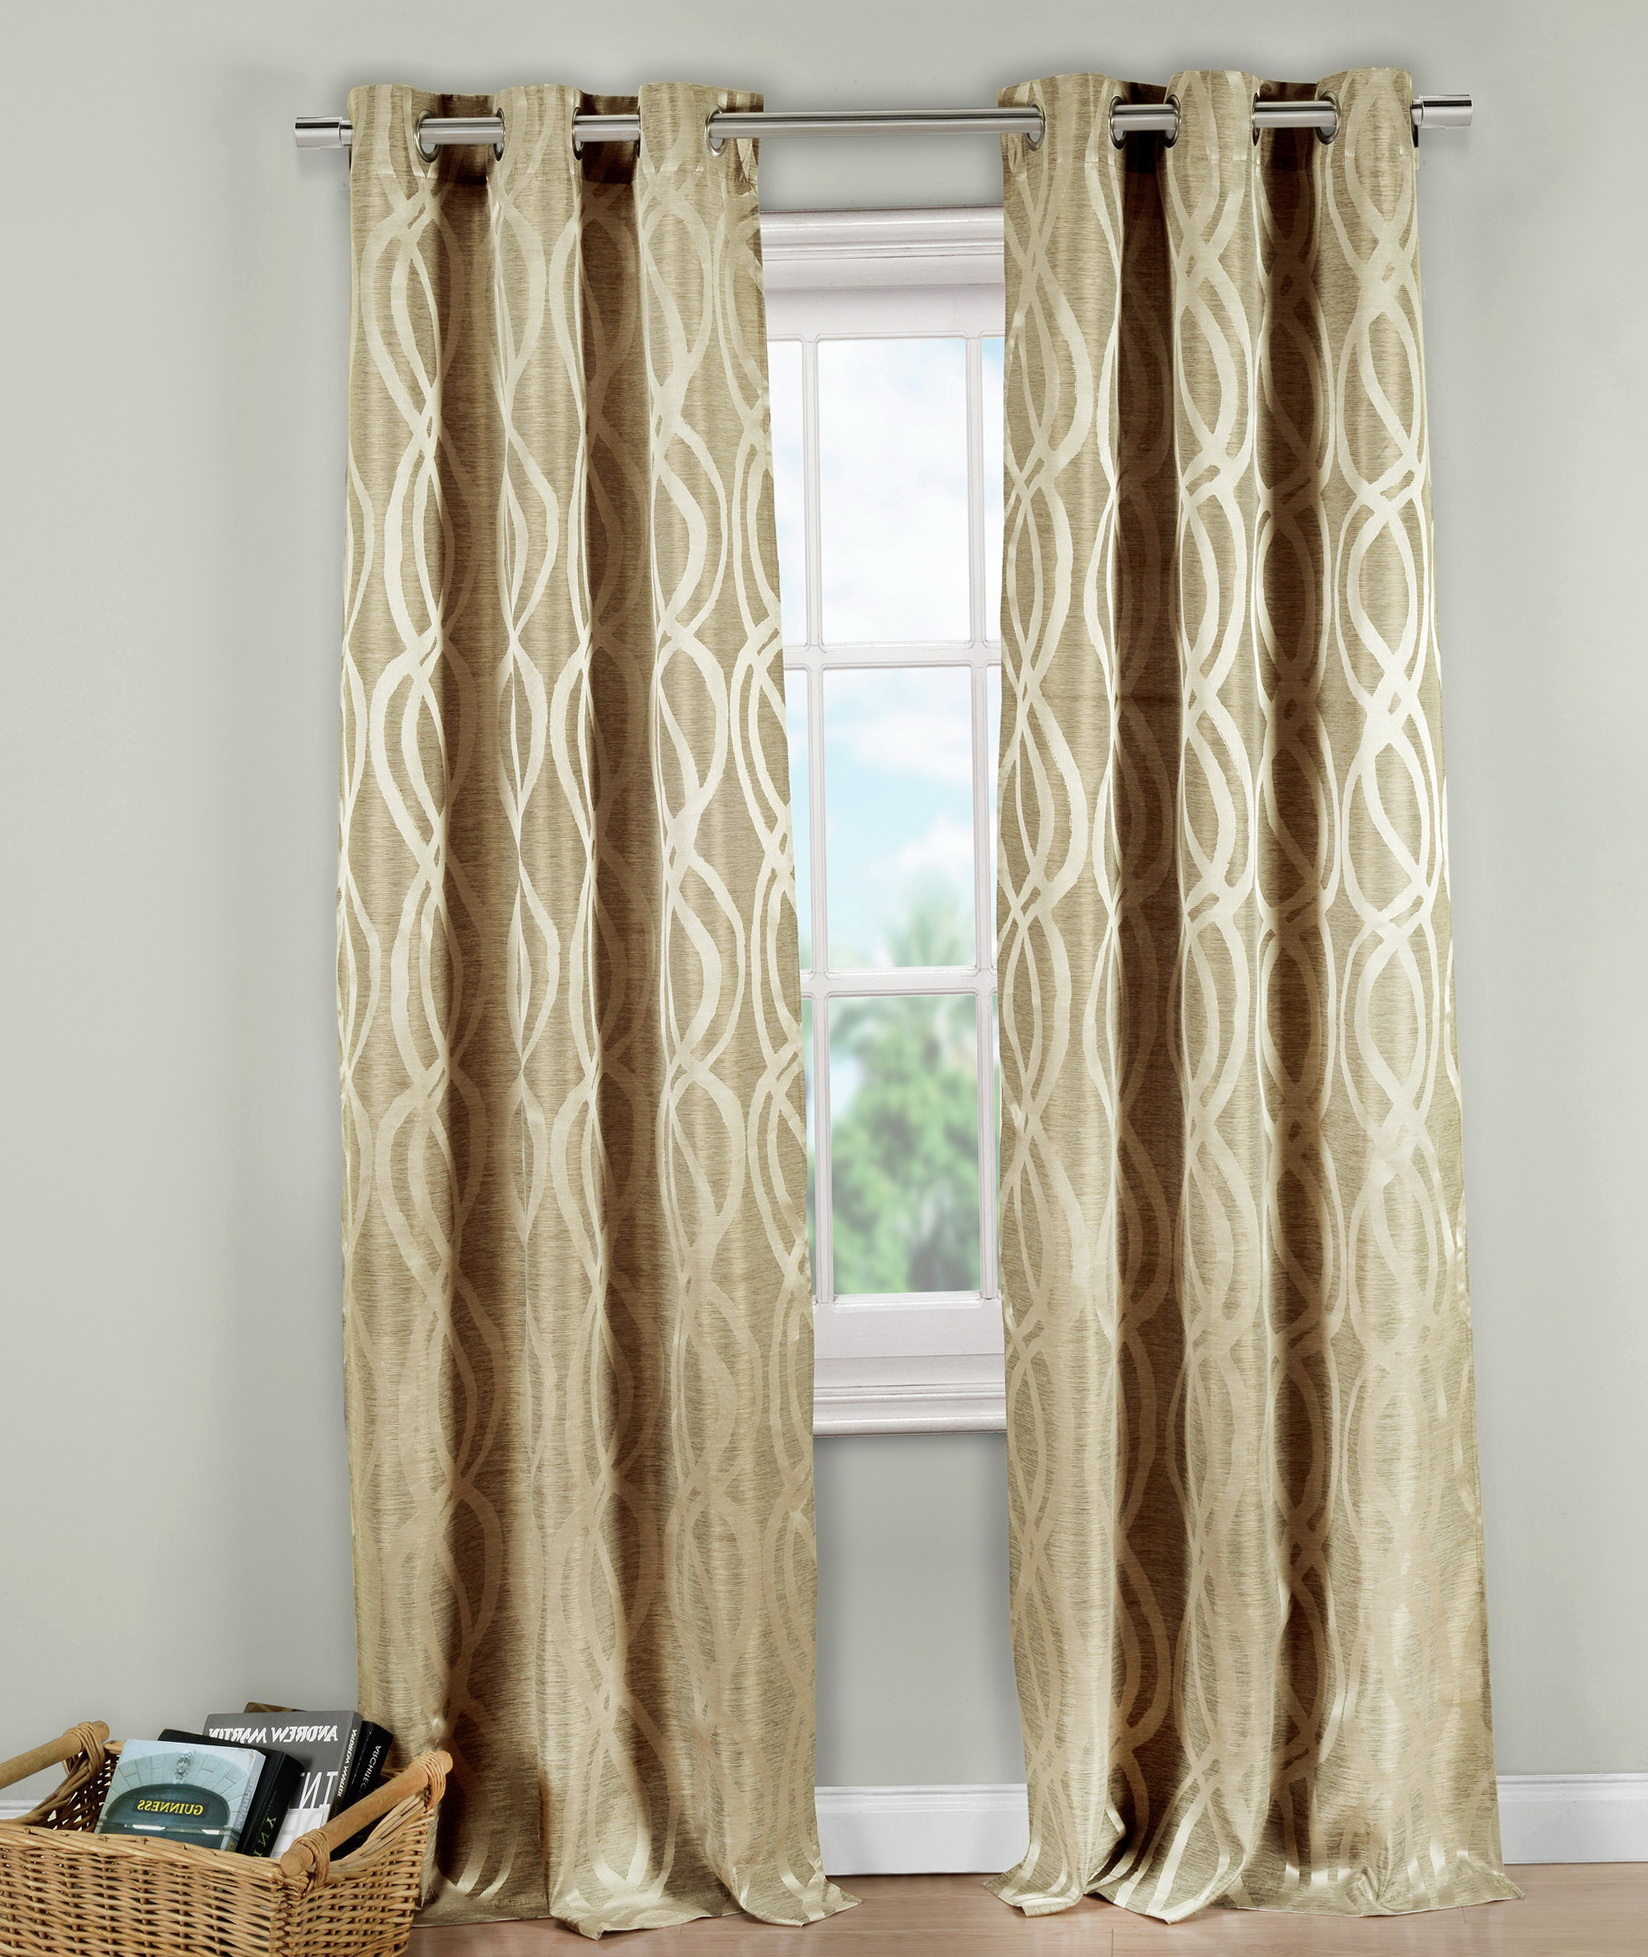 ideas with lengths inspiration affordable curtains marvellous decor valance home modern shower curtain color